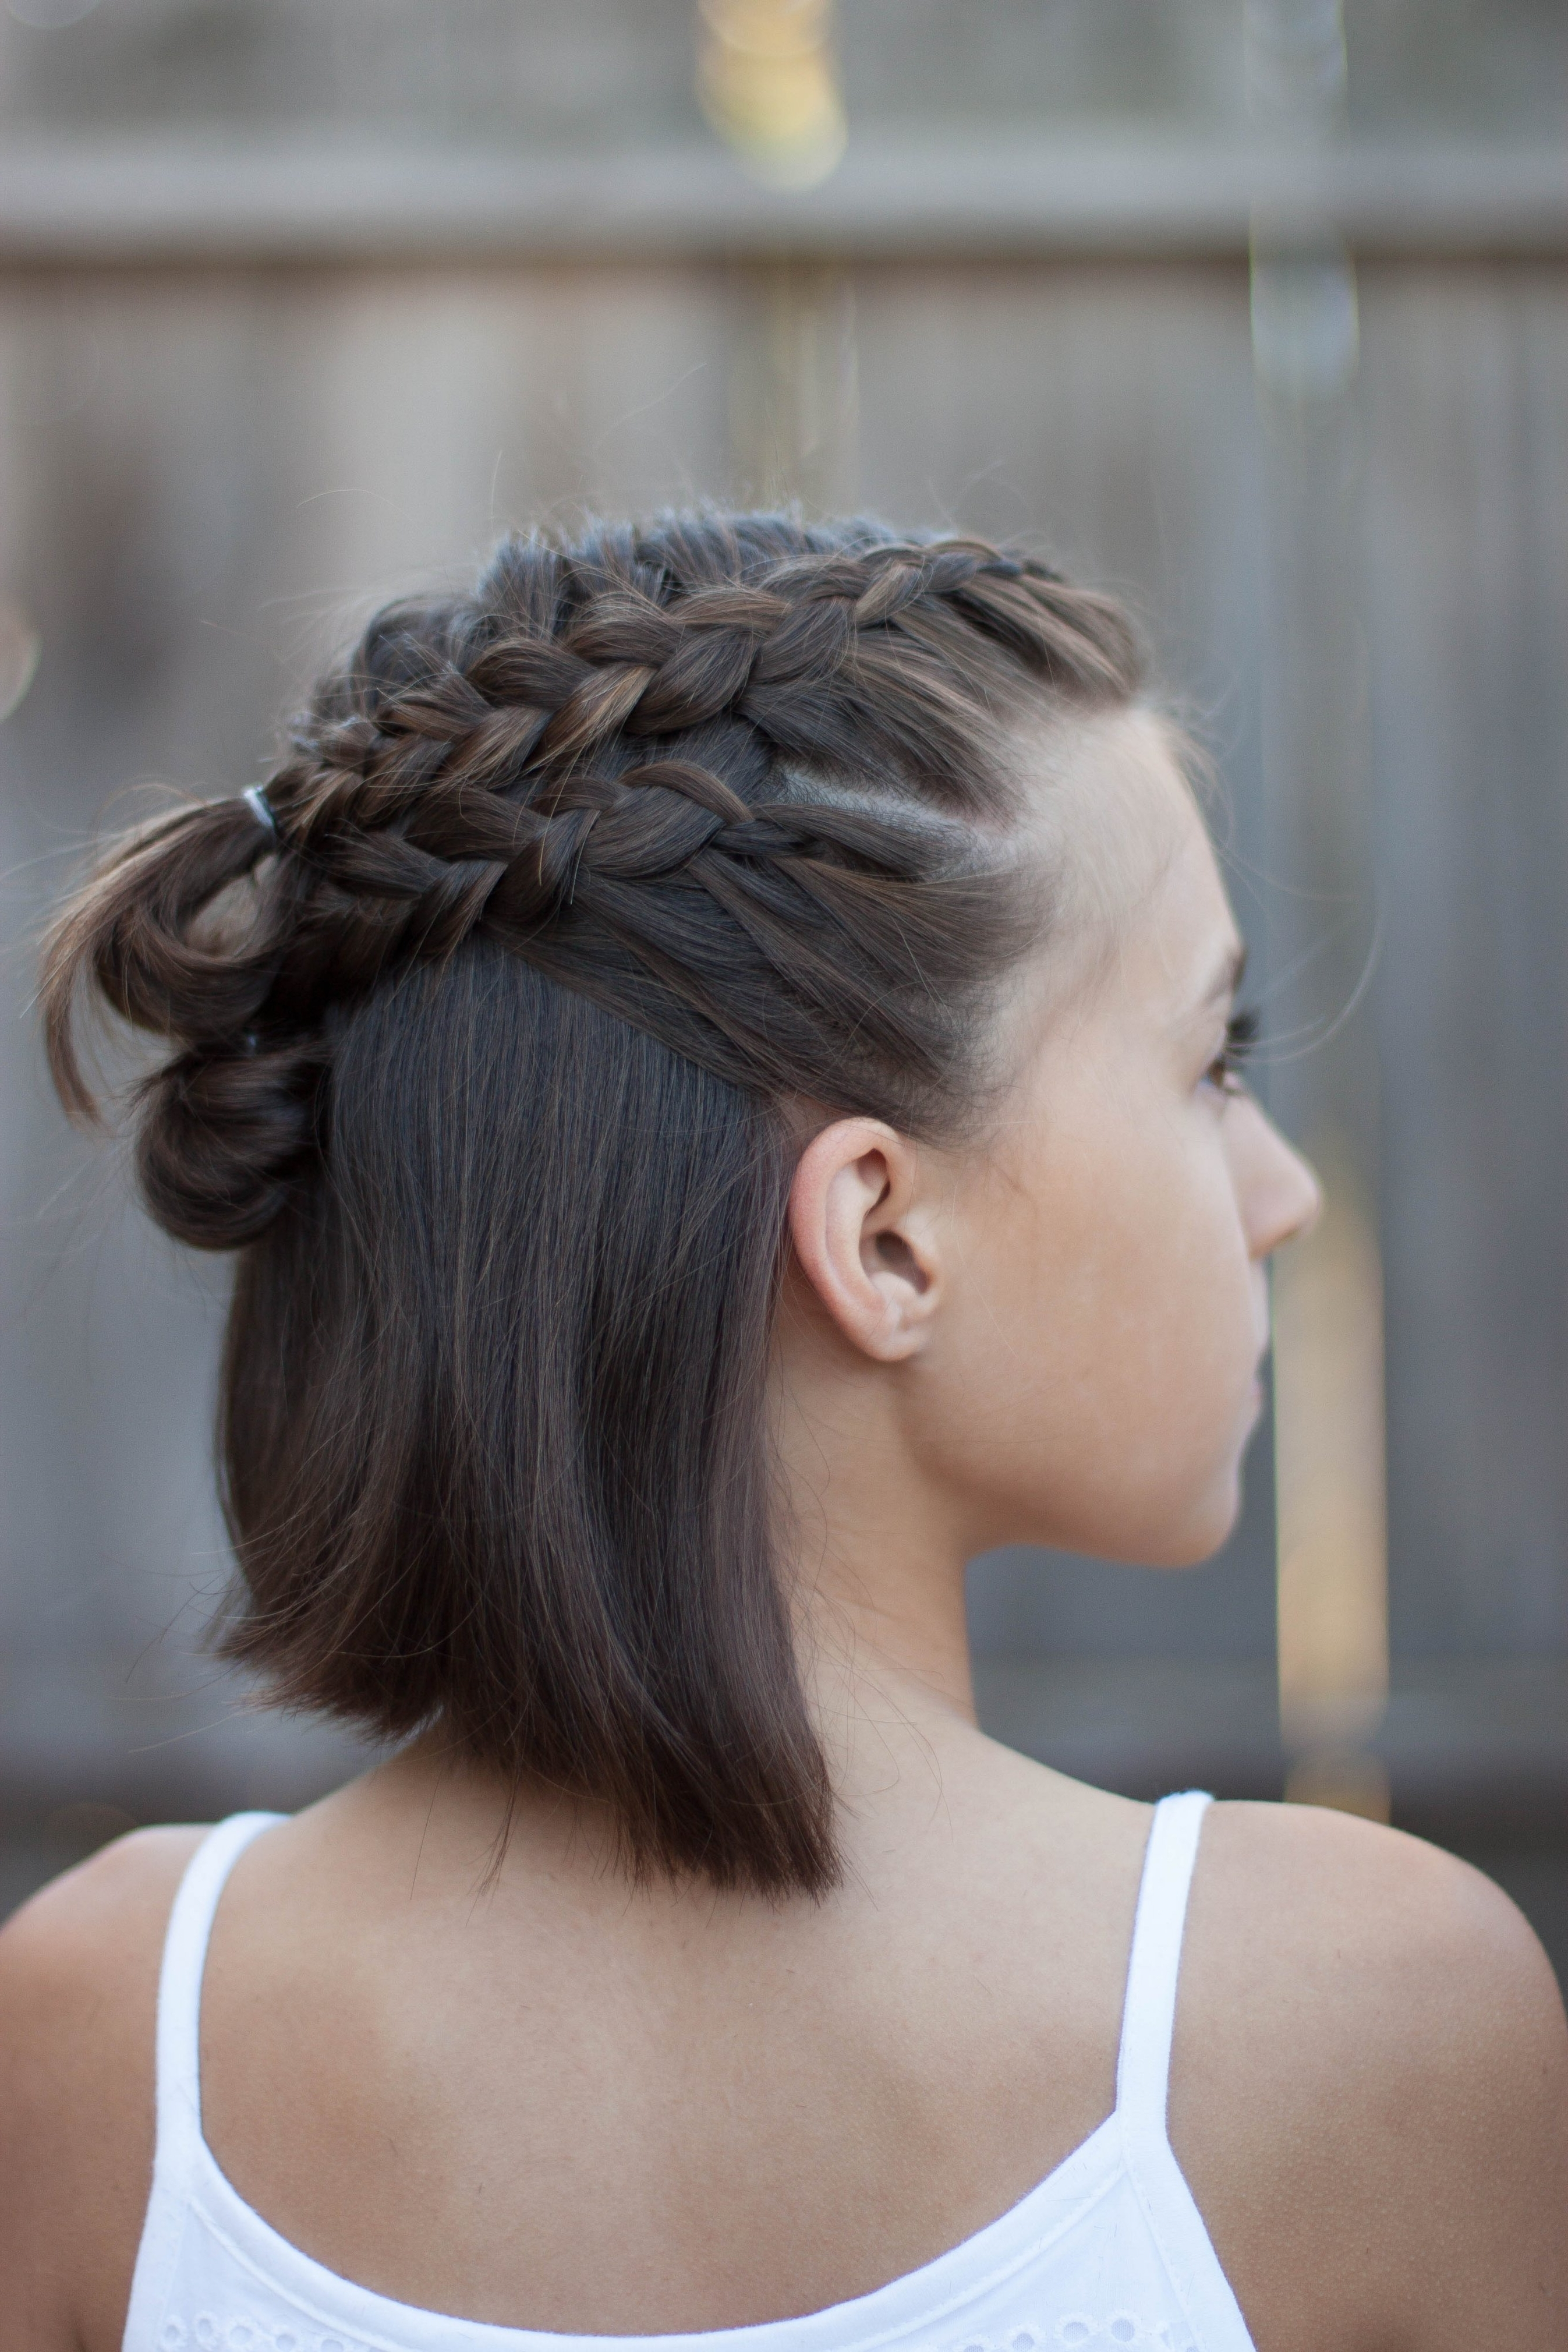 5 Braids For Short Hair (View 15 of 15)